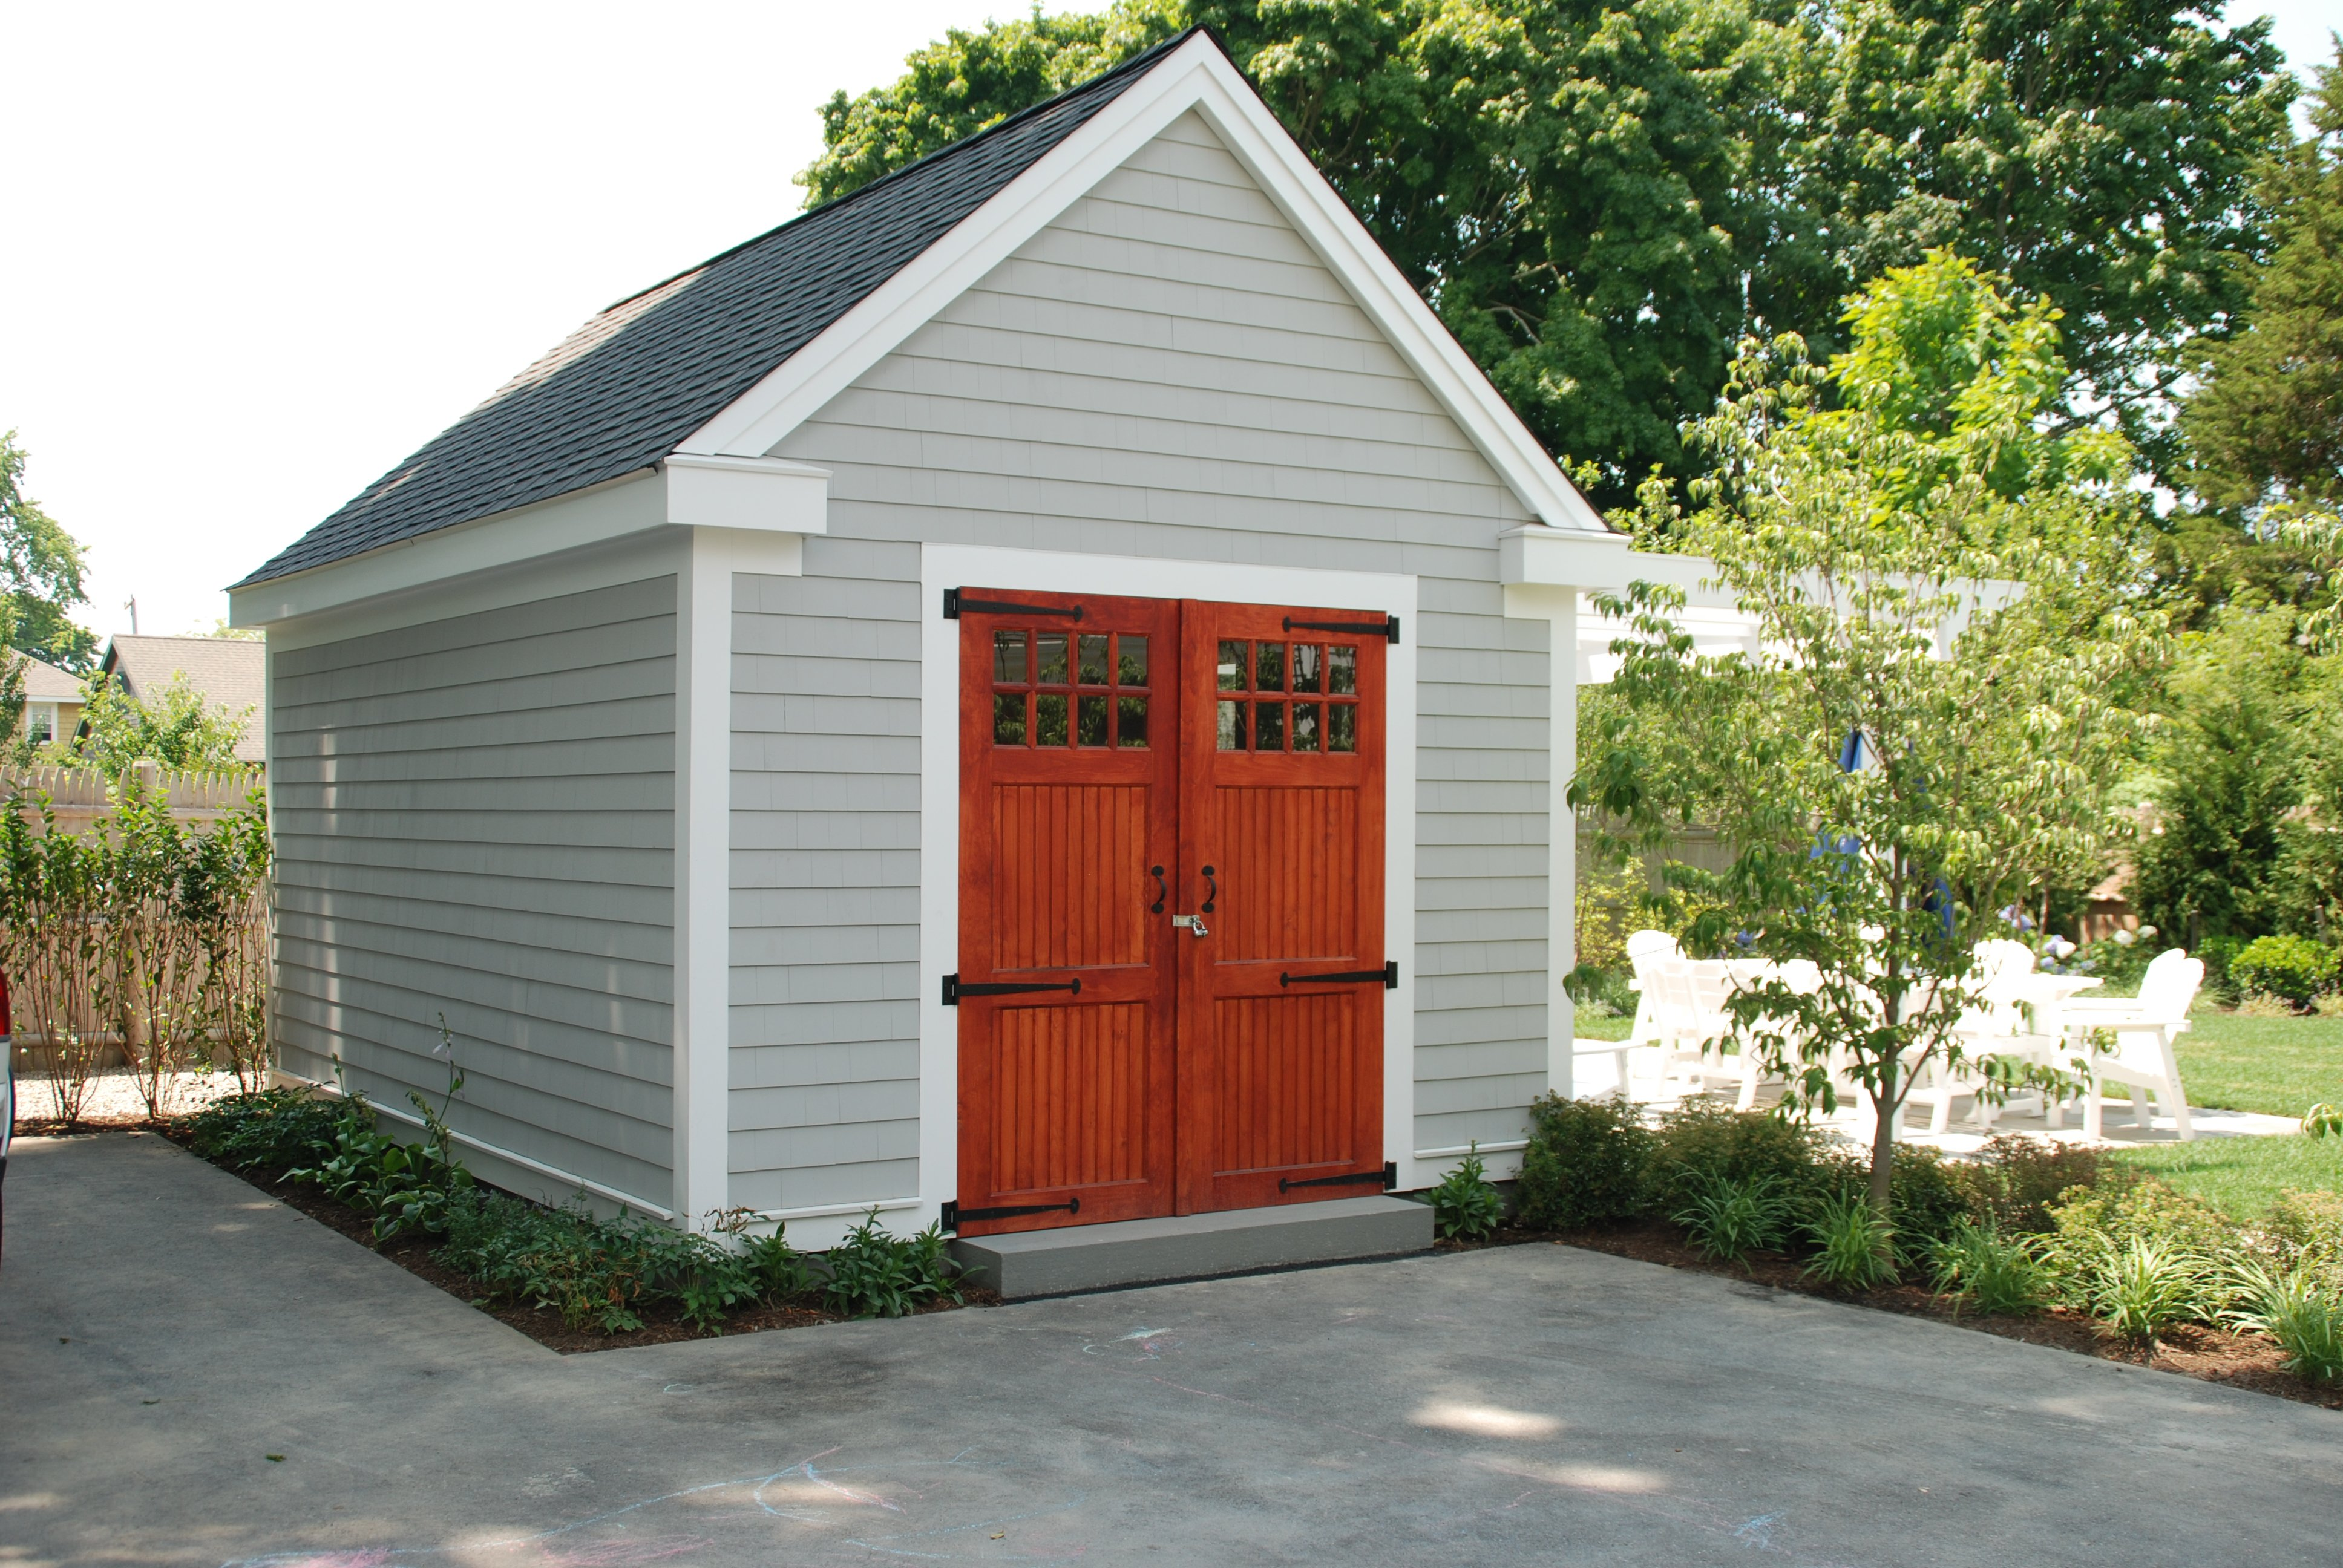 14' x 20' Nantucket Boathouse with custom trim and doors